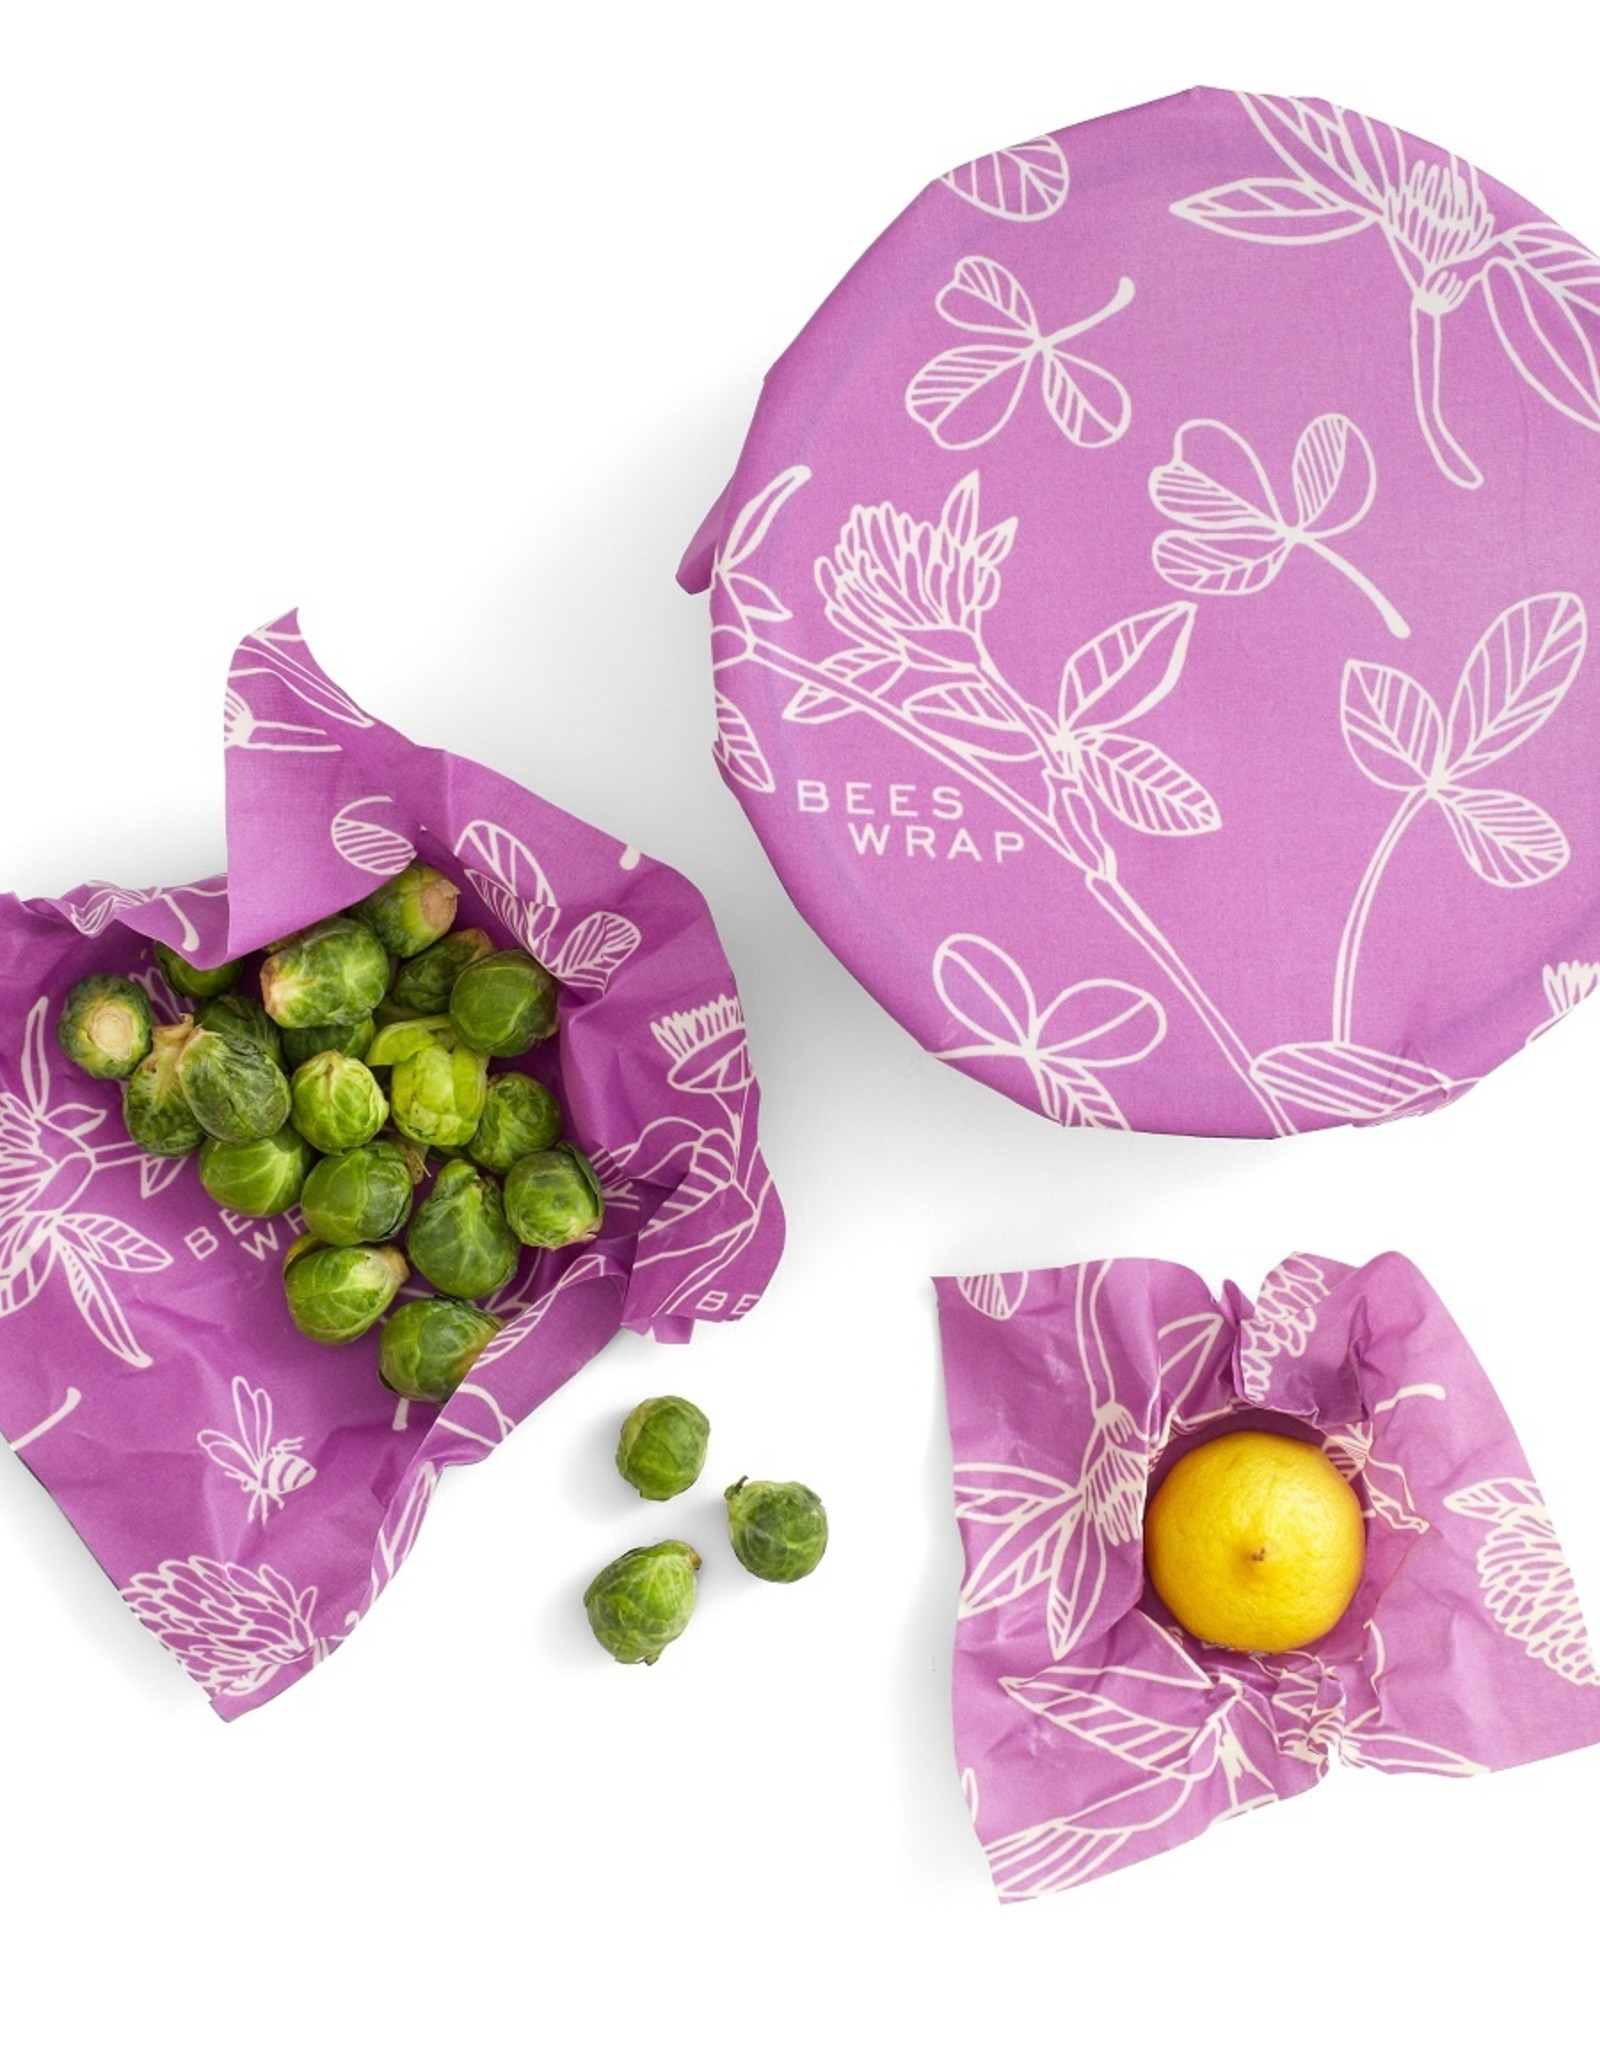 Bee's Wrap Bee's wrap - Assorted Mimi's purple (set of 3)